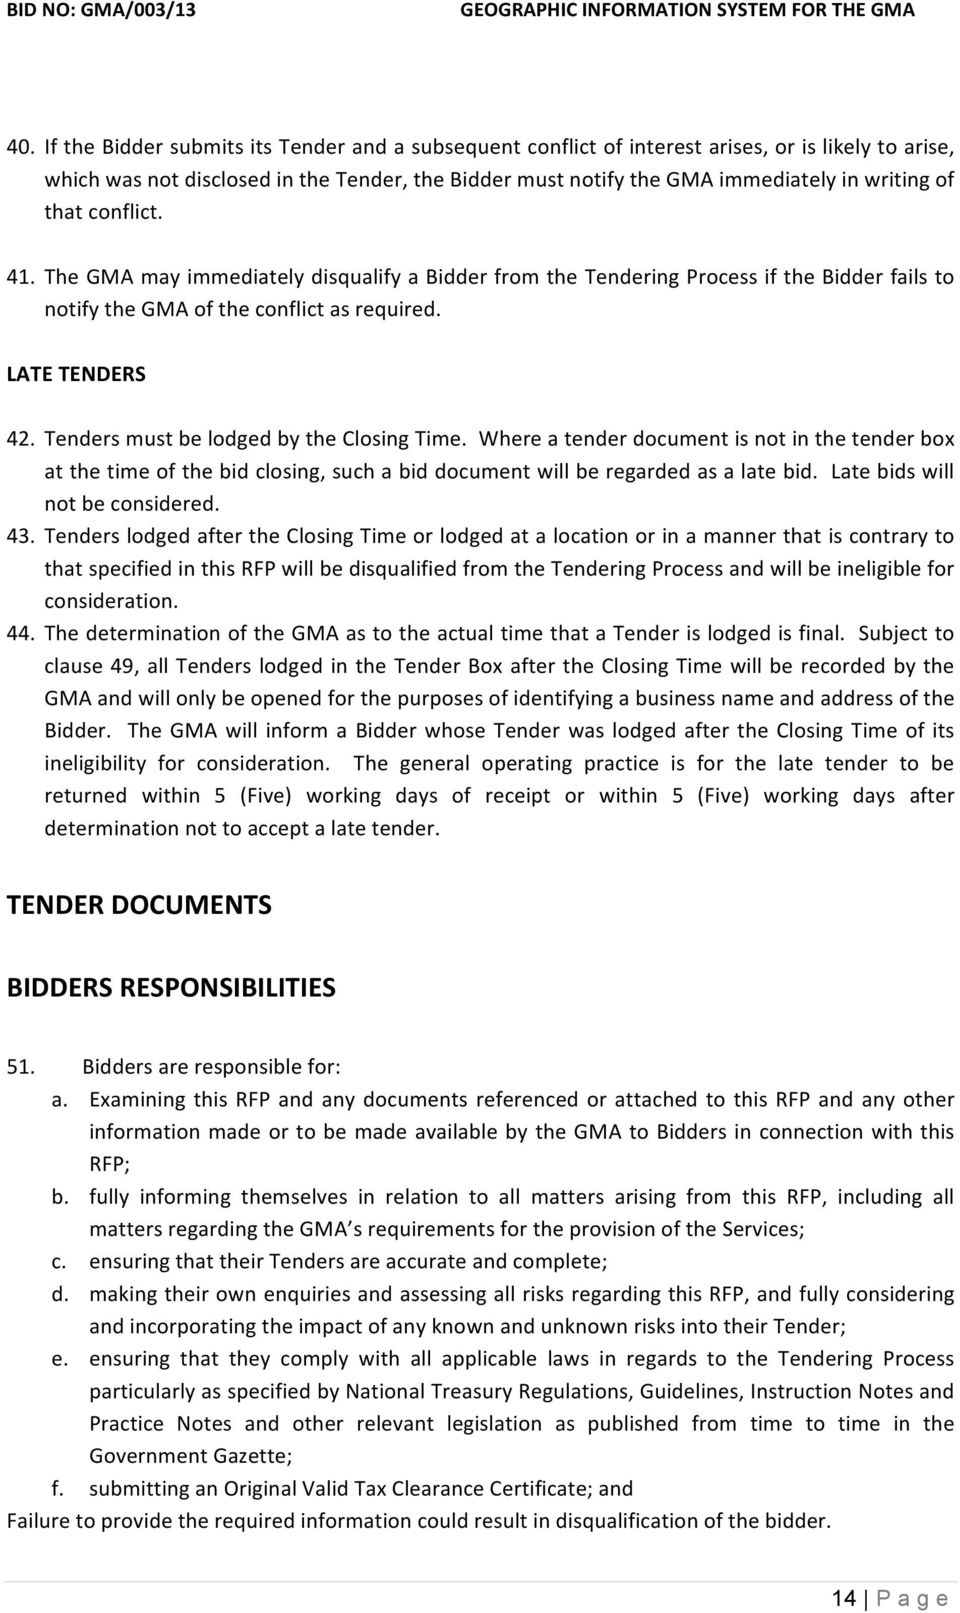 Tenders must be lodged by the Closing Time. Where a tender document is not in the tender box at the time of the bid closing, such a bid document will be regarded as a late bid.